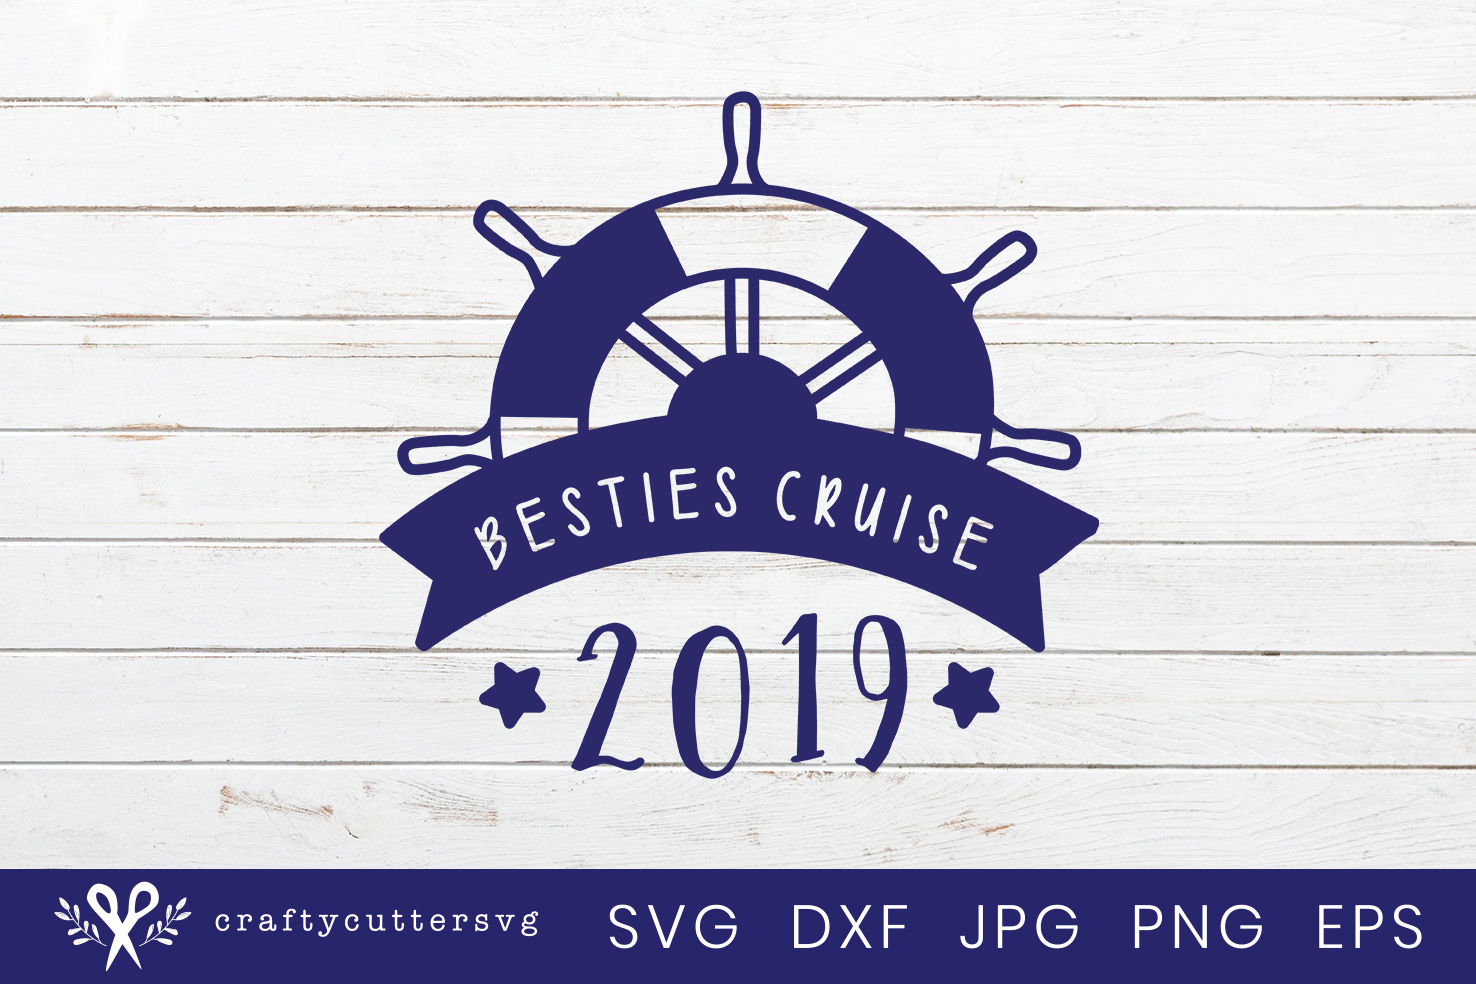 Besties Cruise 2019 Svg Cut File Steering Wheel Clipart example image 2